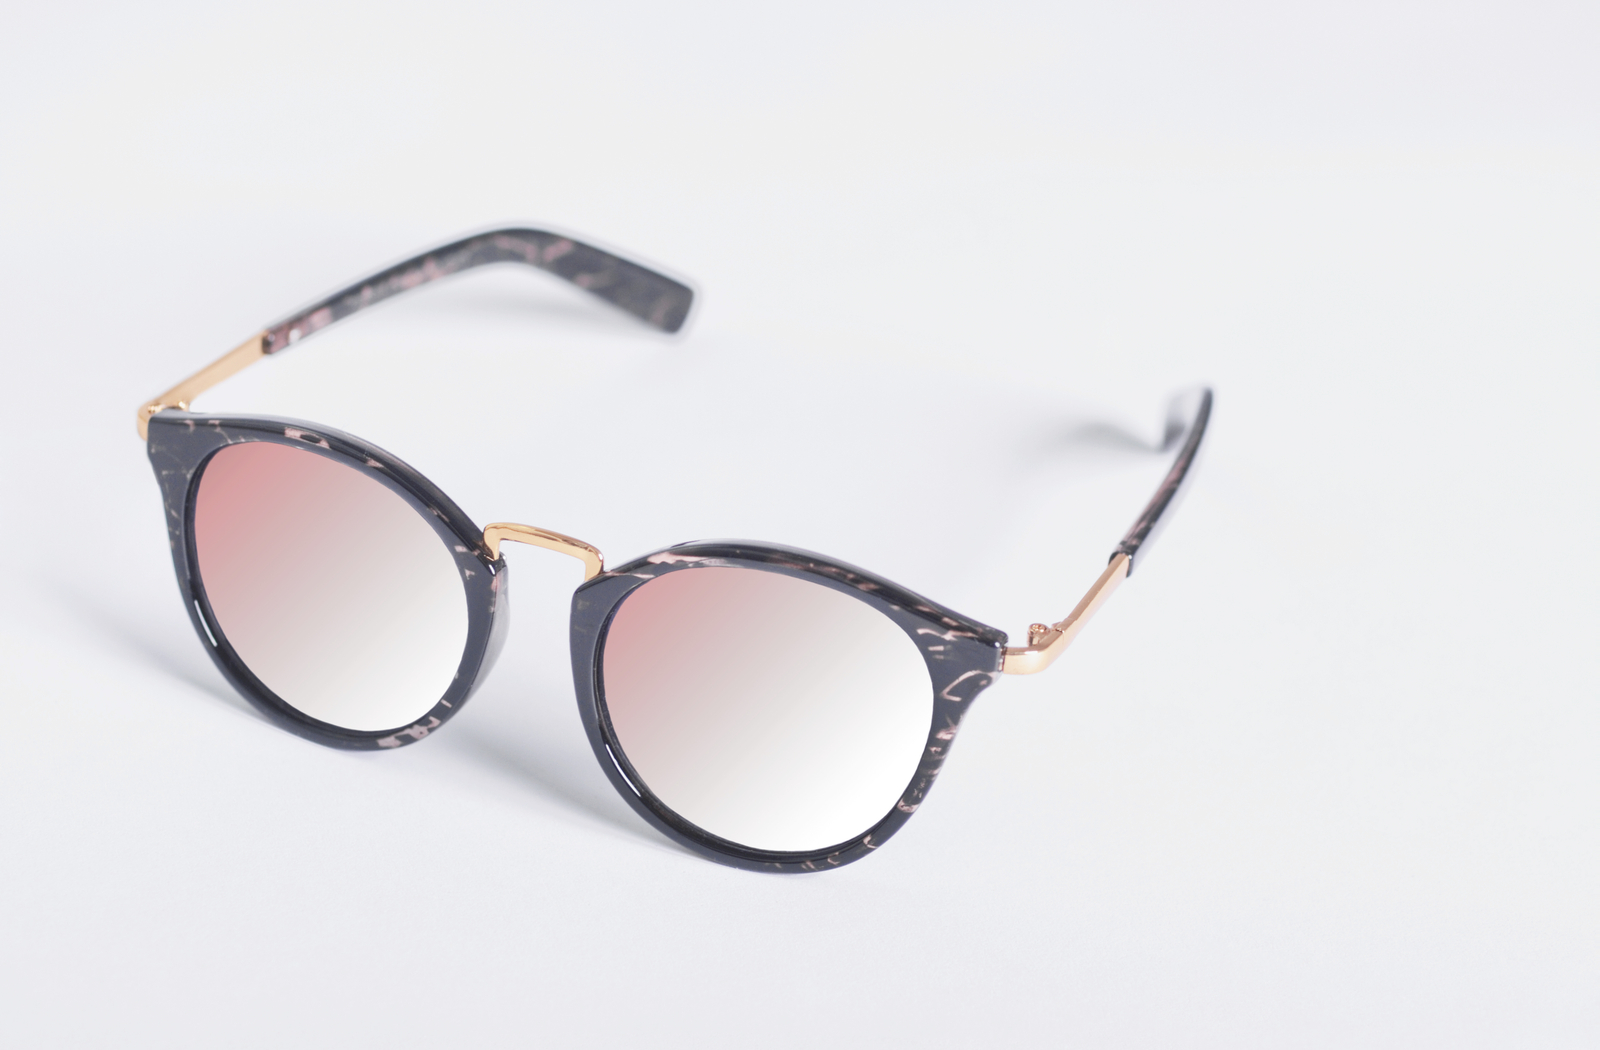 glasses with pink colour tint